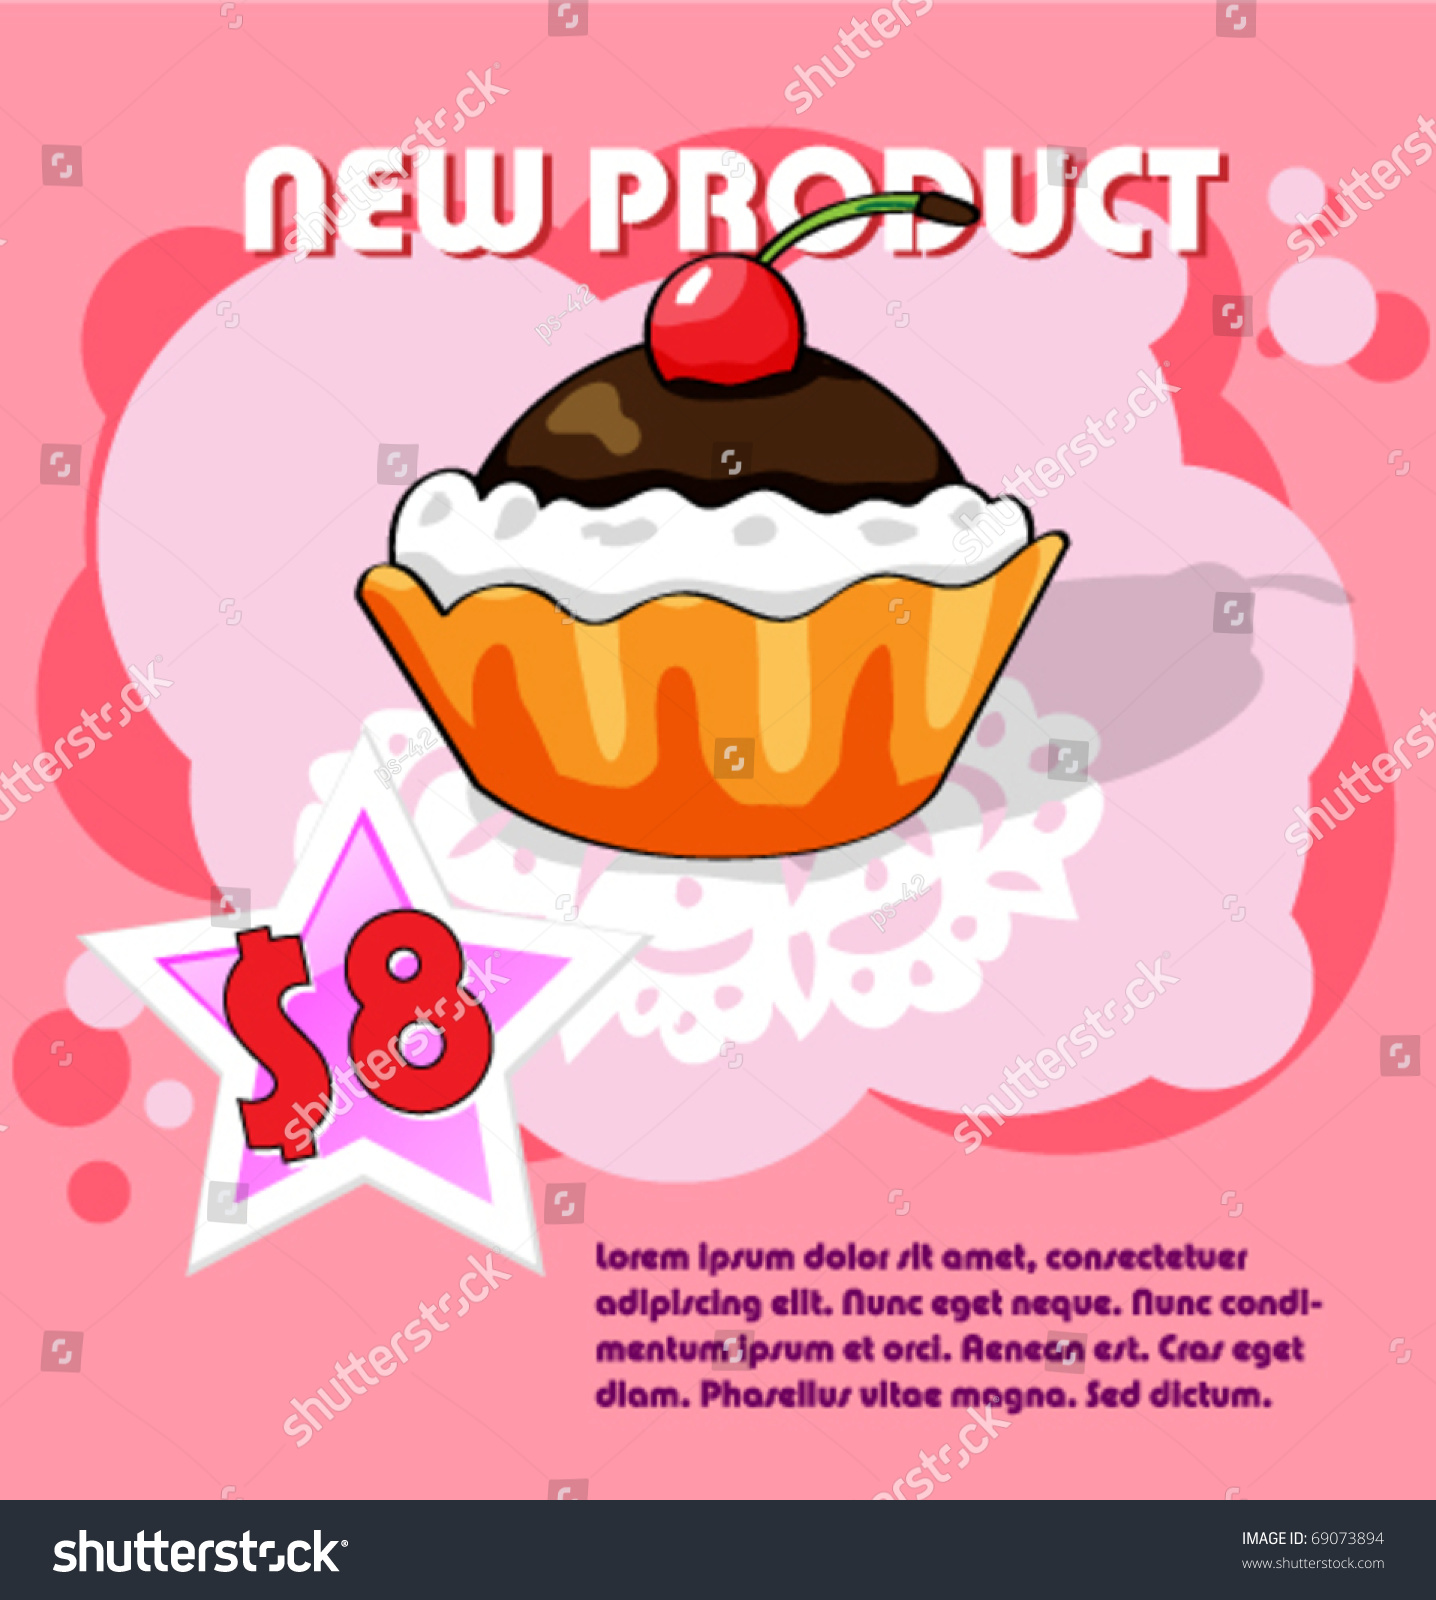 product poster shop design card stock vector  product poster for shop design card offers price vector